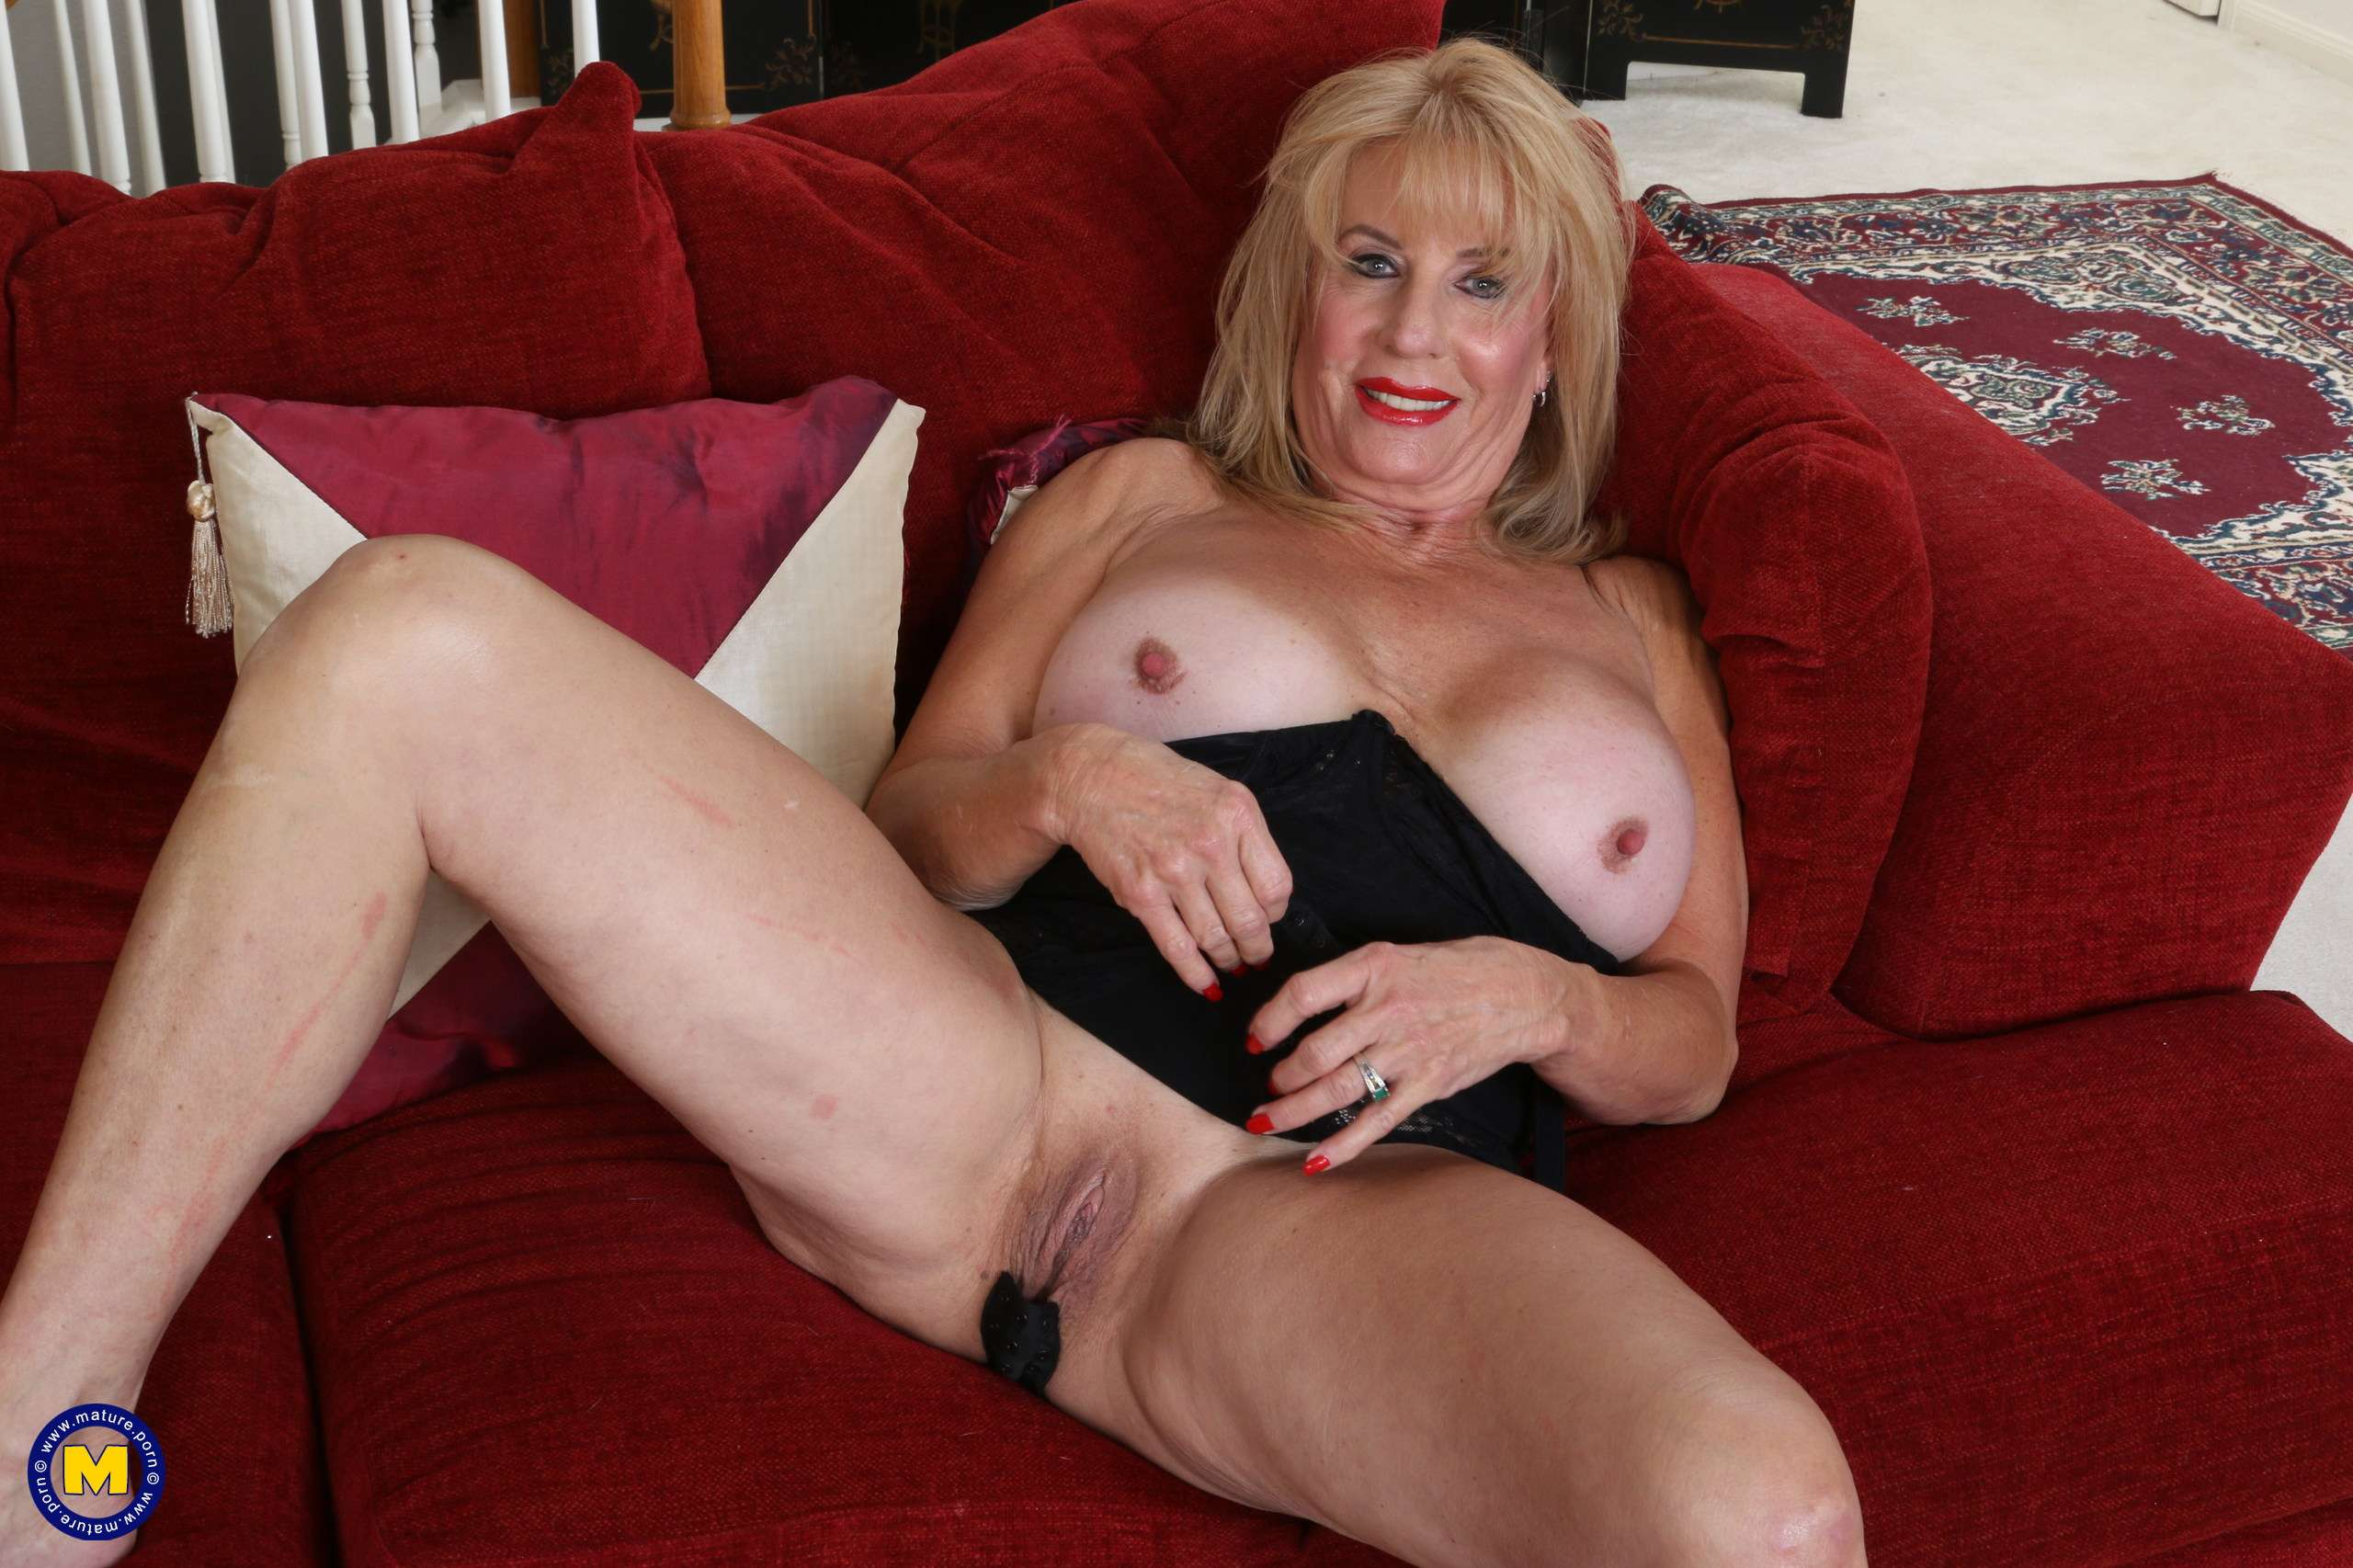 Horny American mature lady Rae getting wet and wild